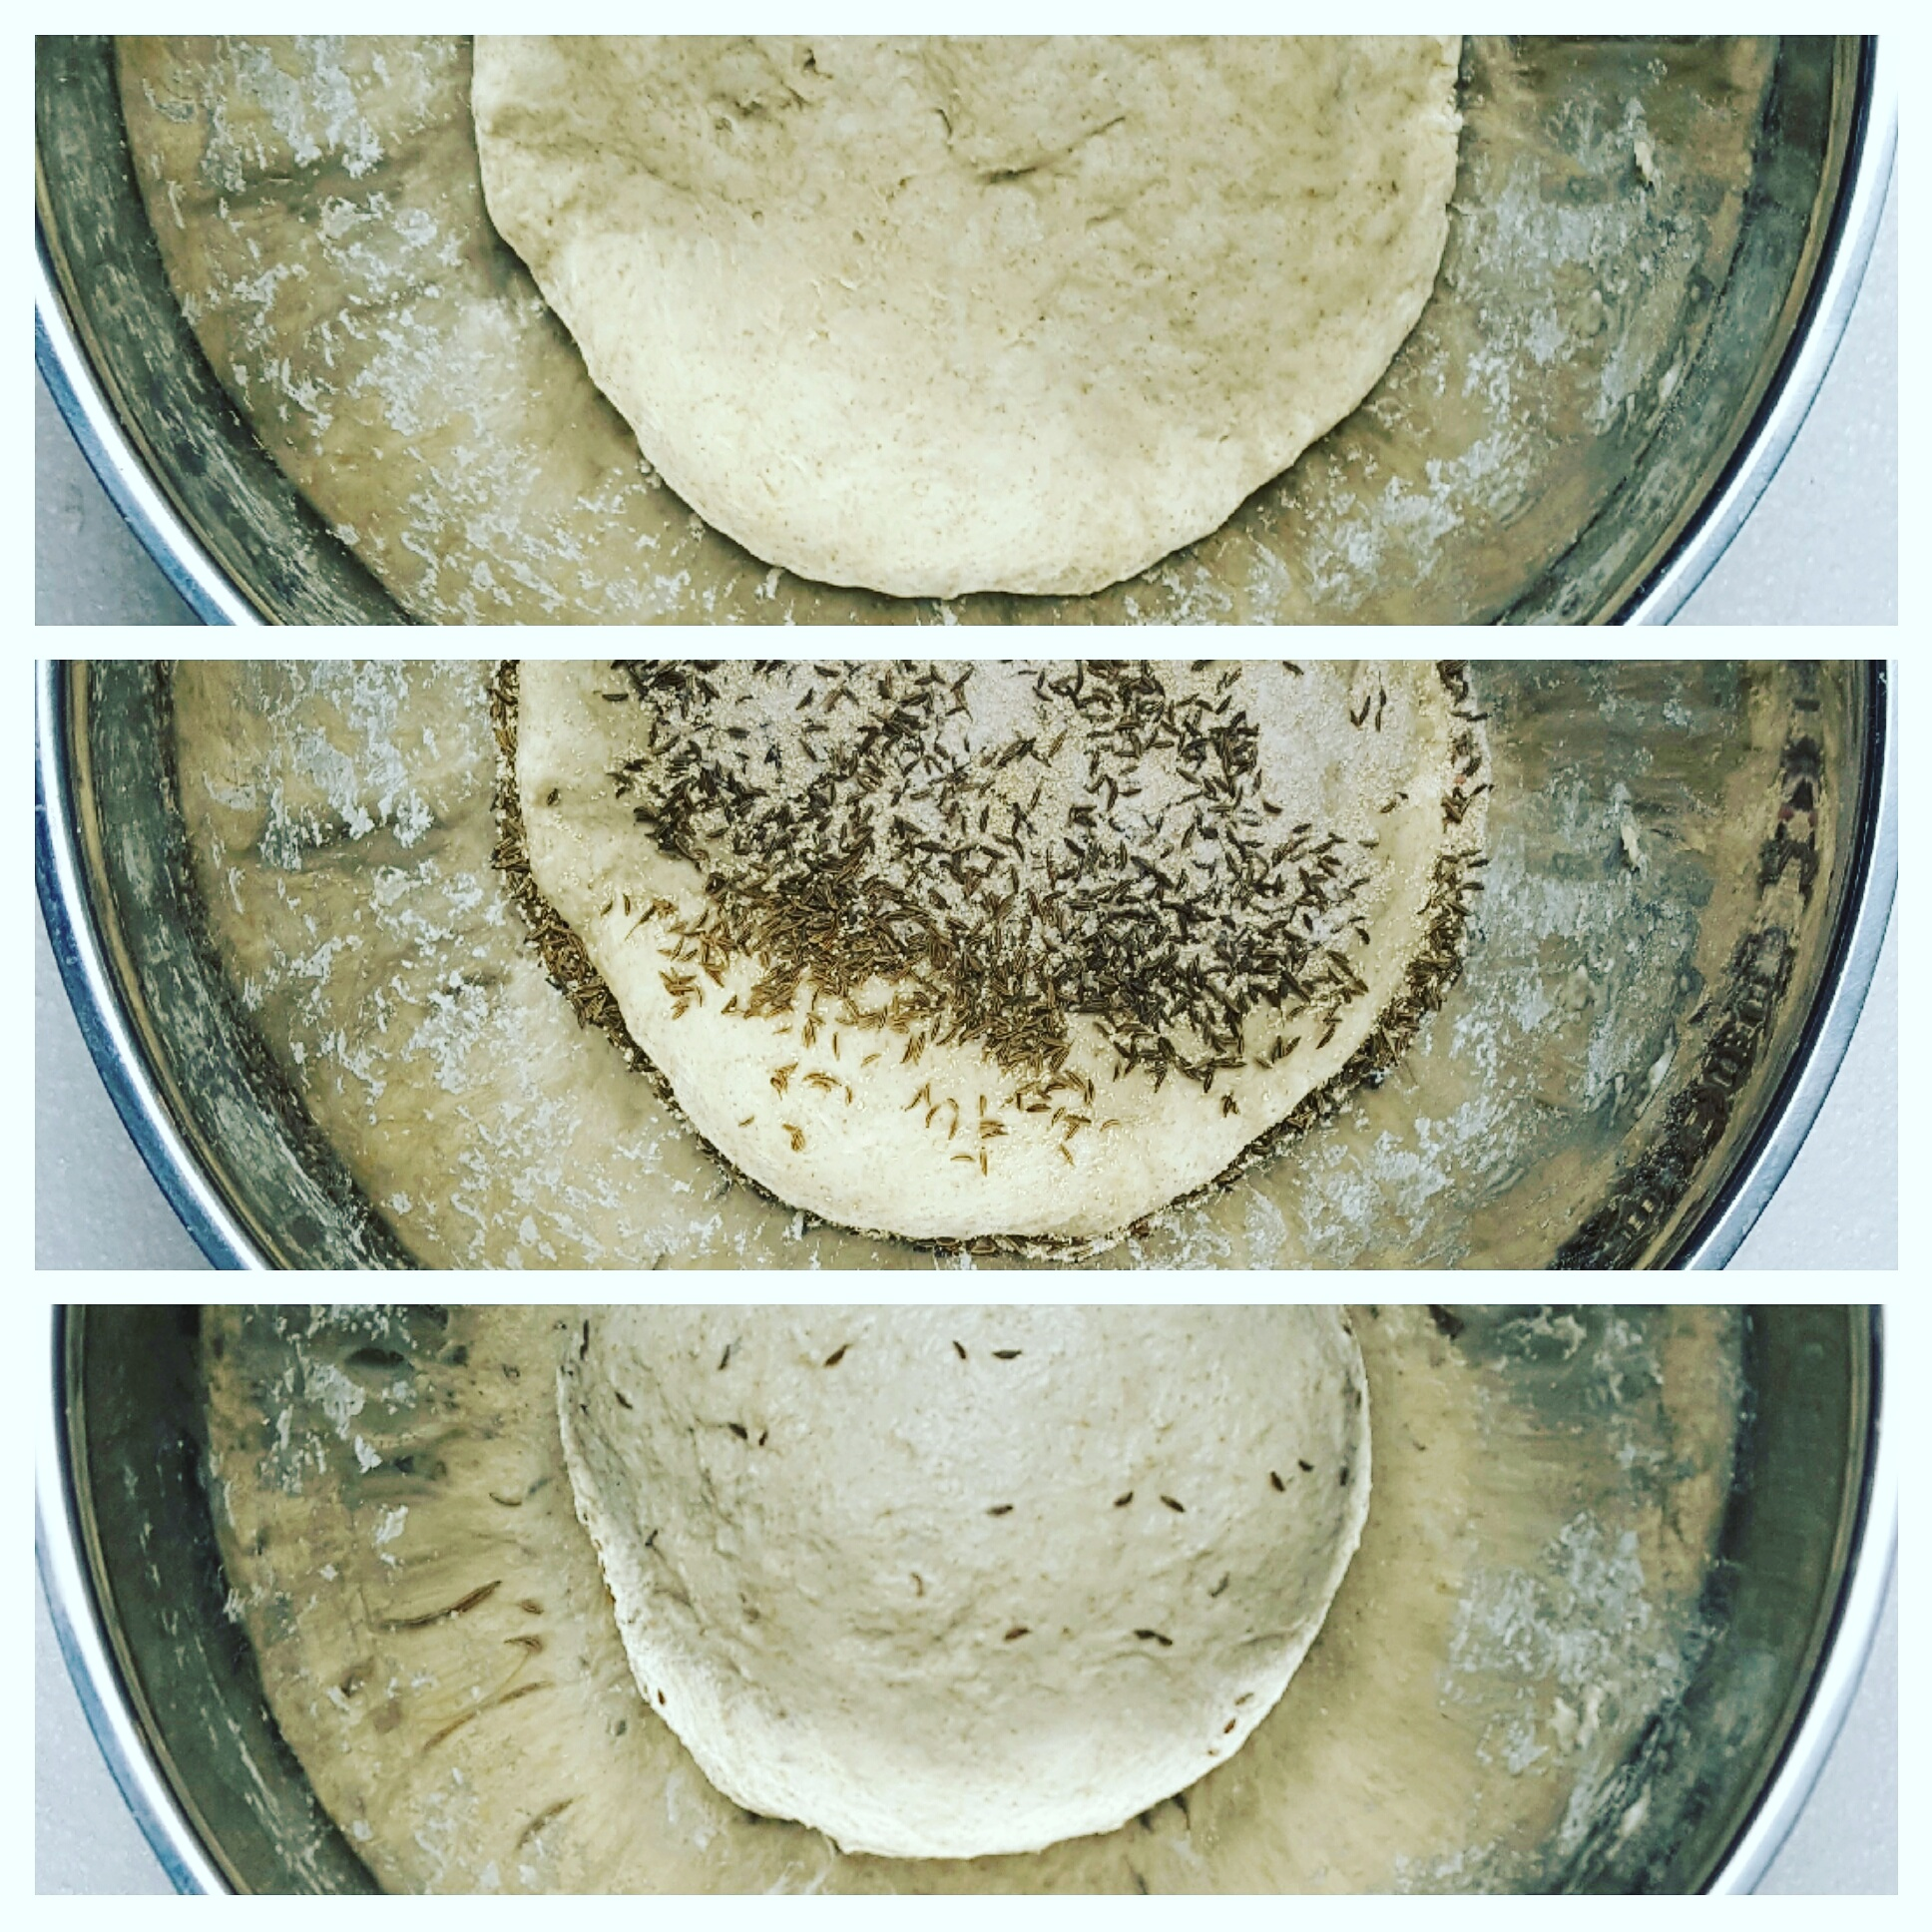 Picture of Add Caraway Mixture to Dough